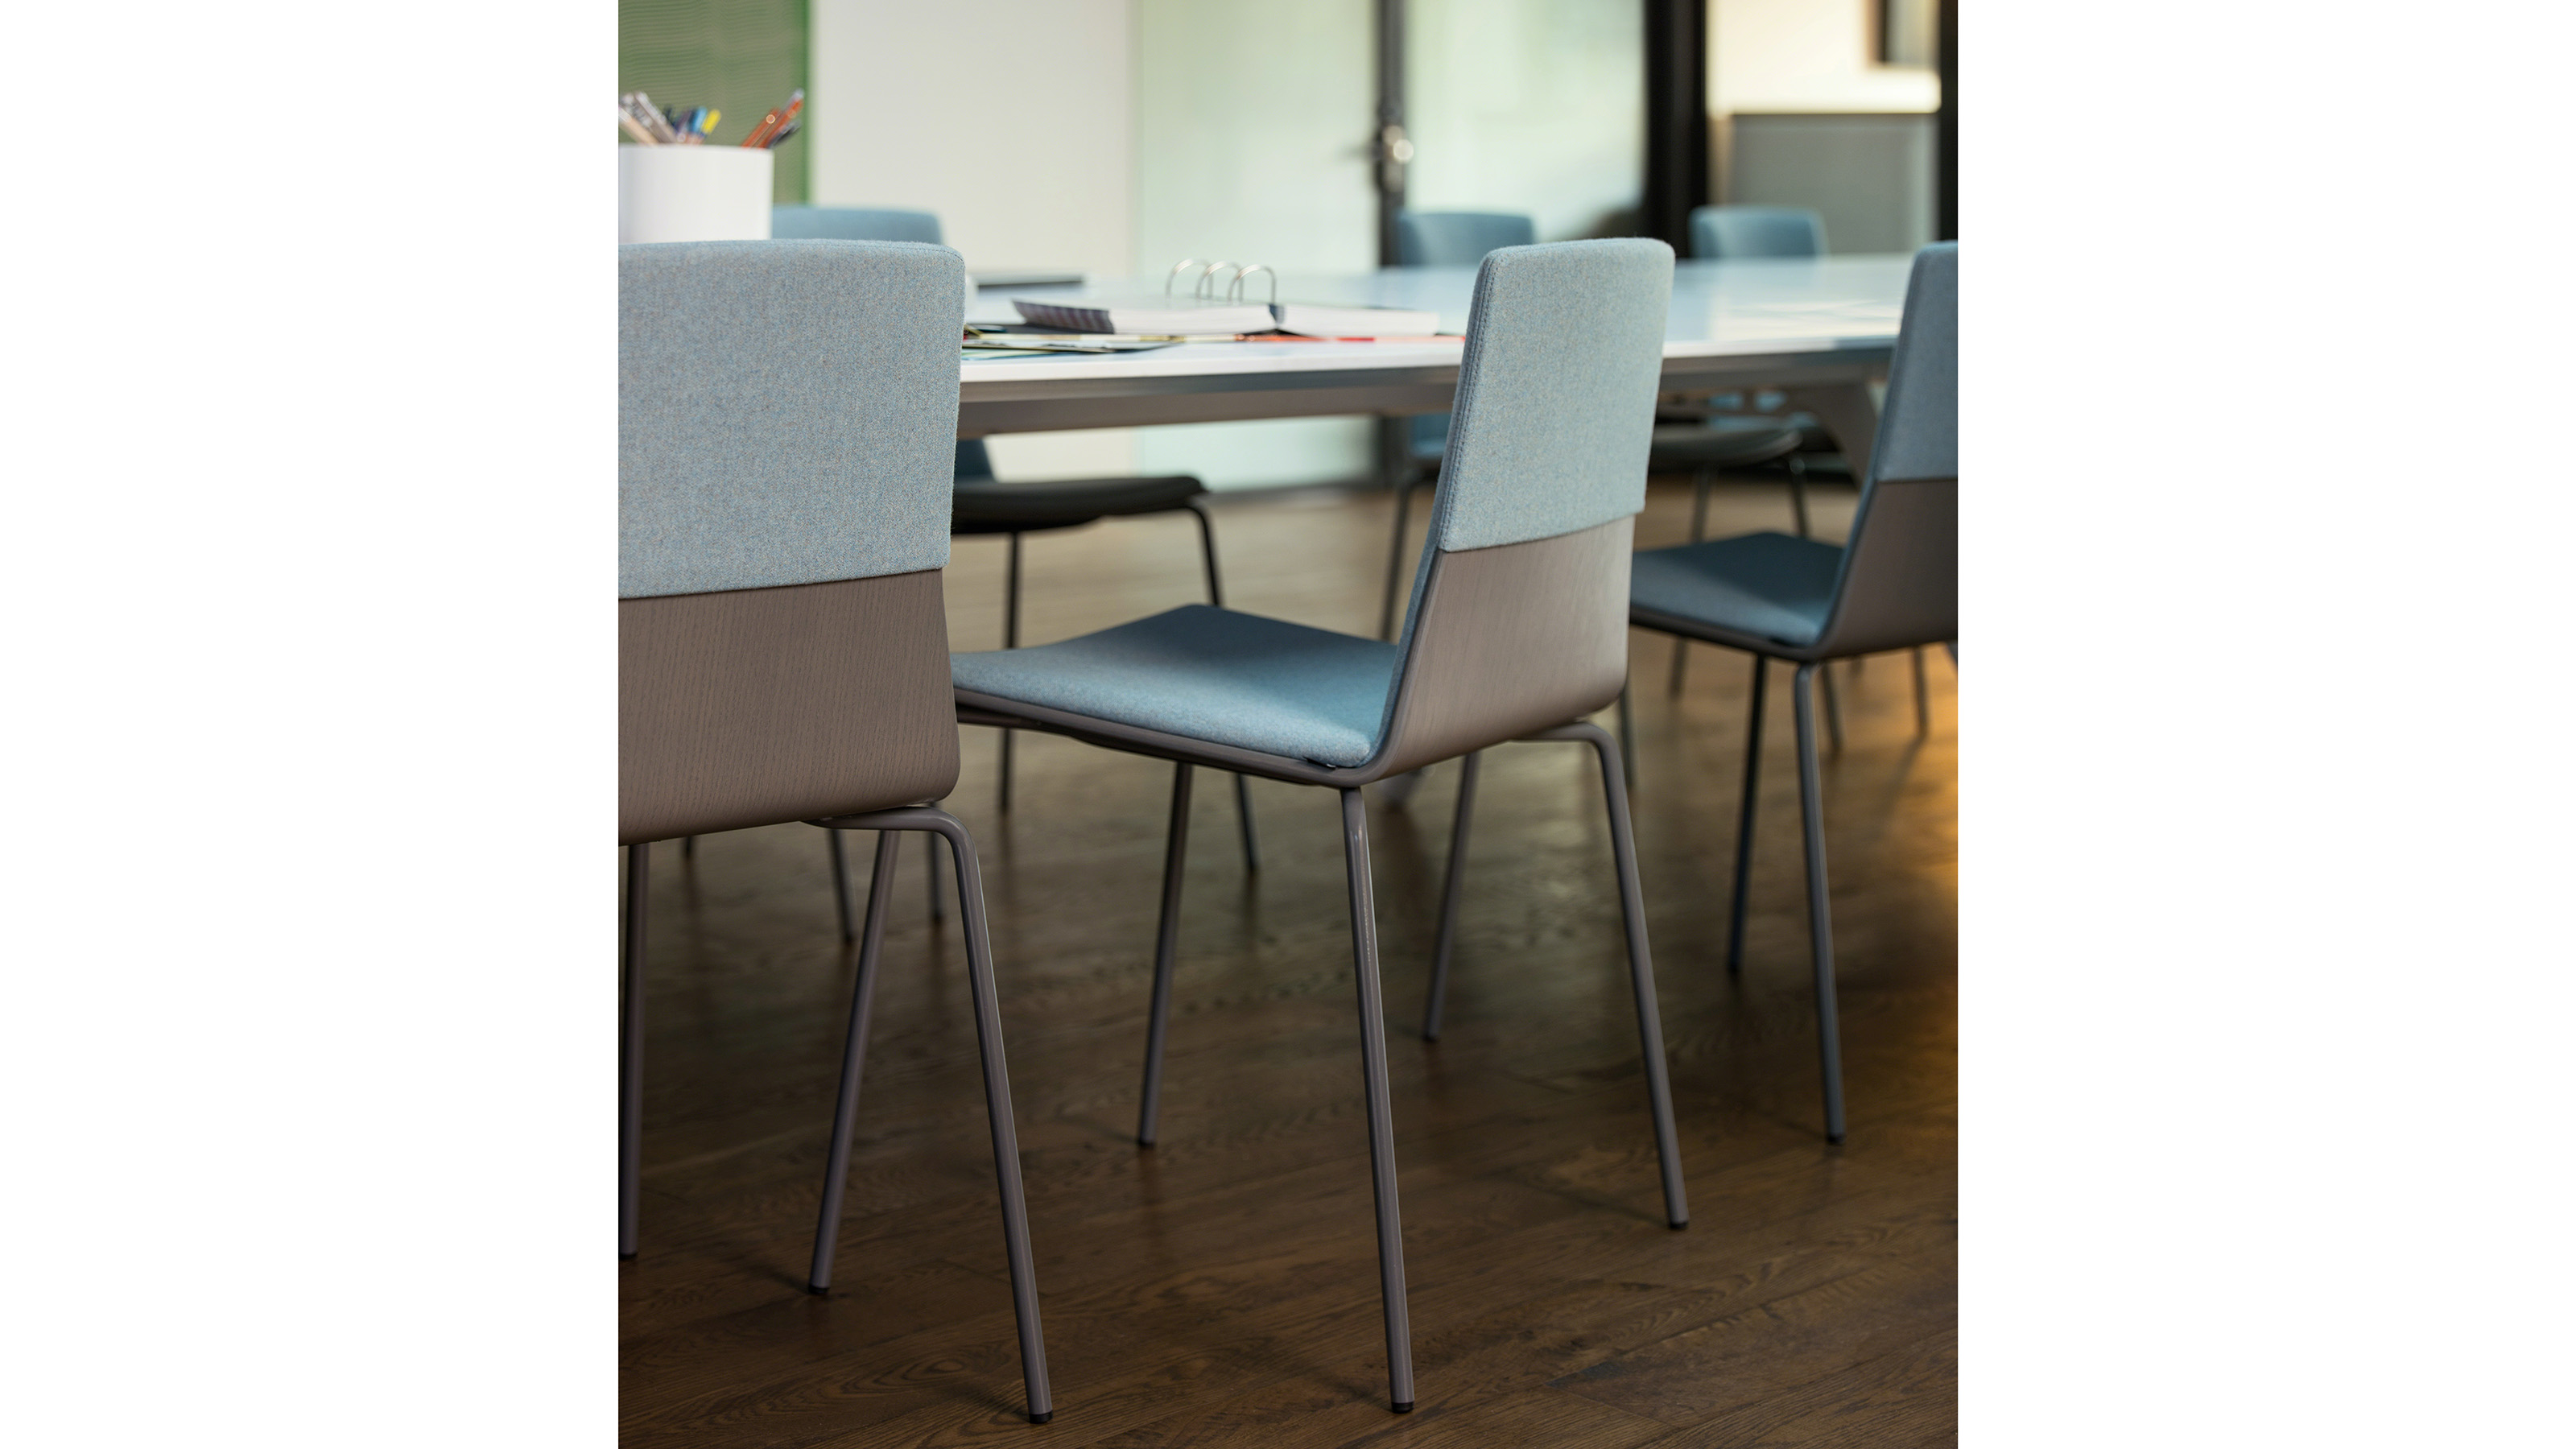 coalesse wrapp chair best office for long hours guest chairs stools archives missoula s city free local delivery